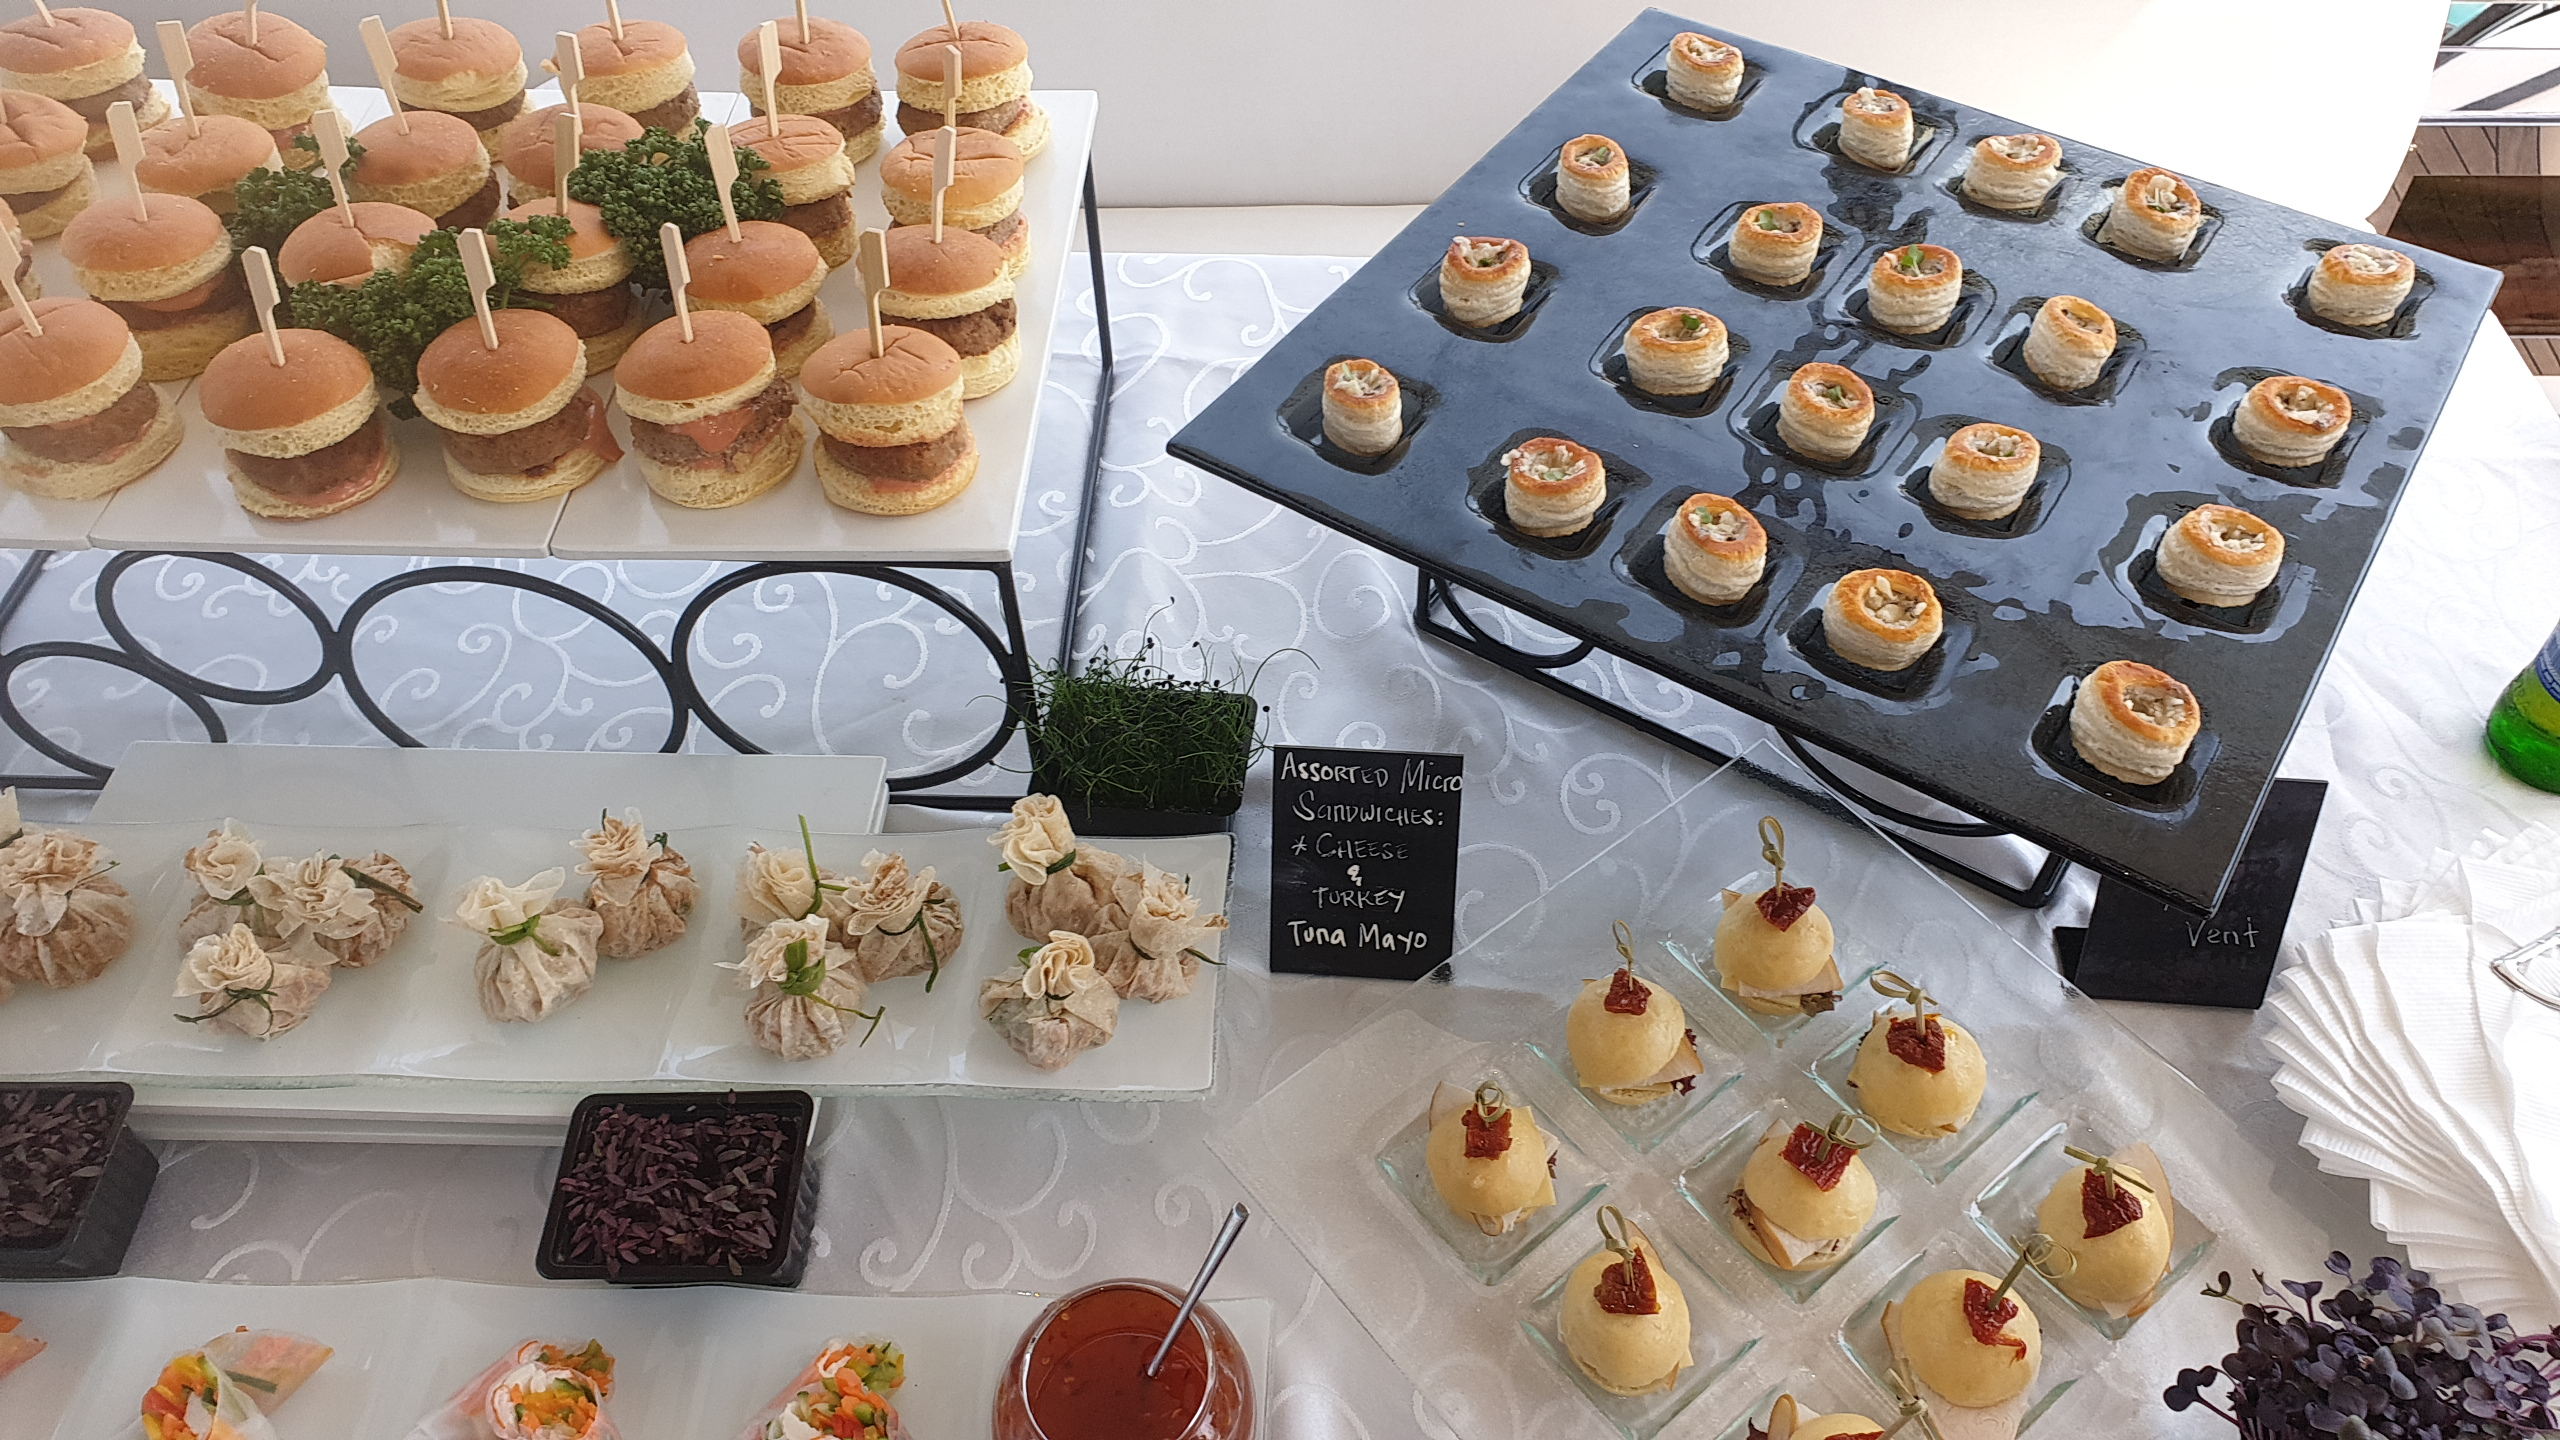 Yacht Catering in Dubai onboard Desserts 6